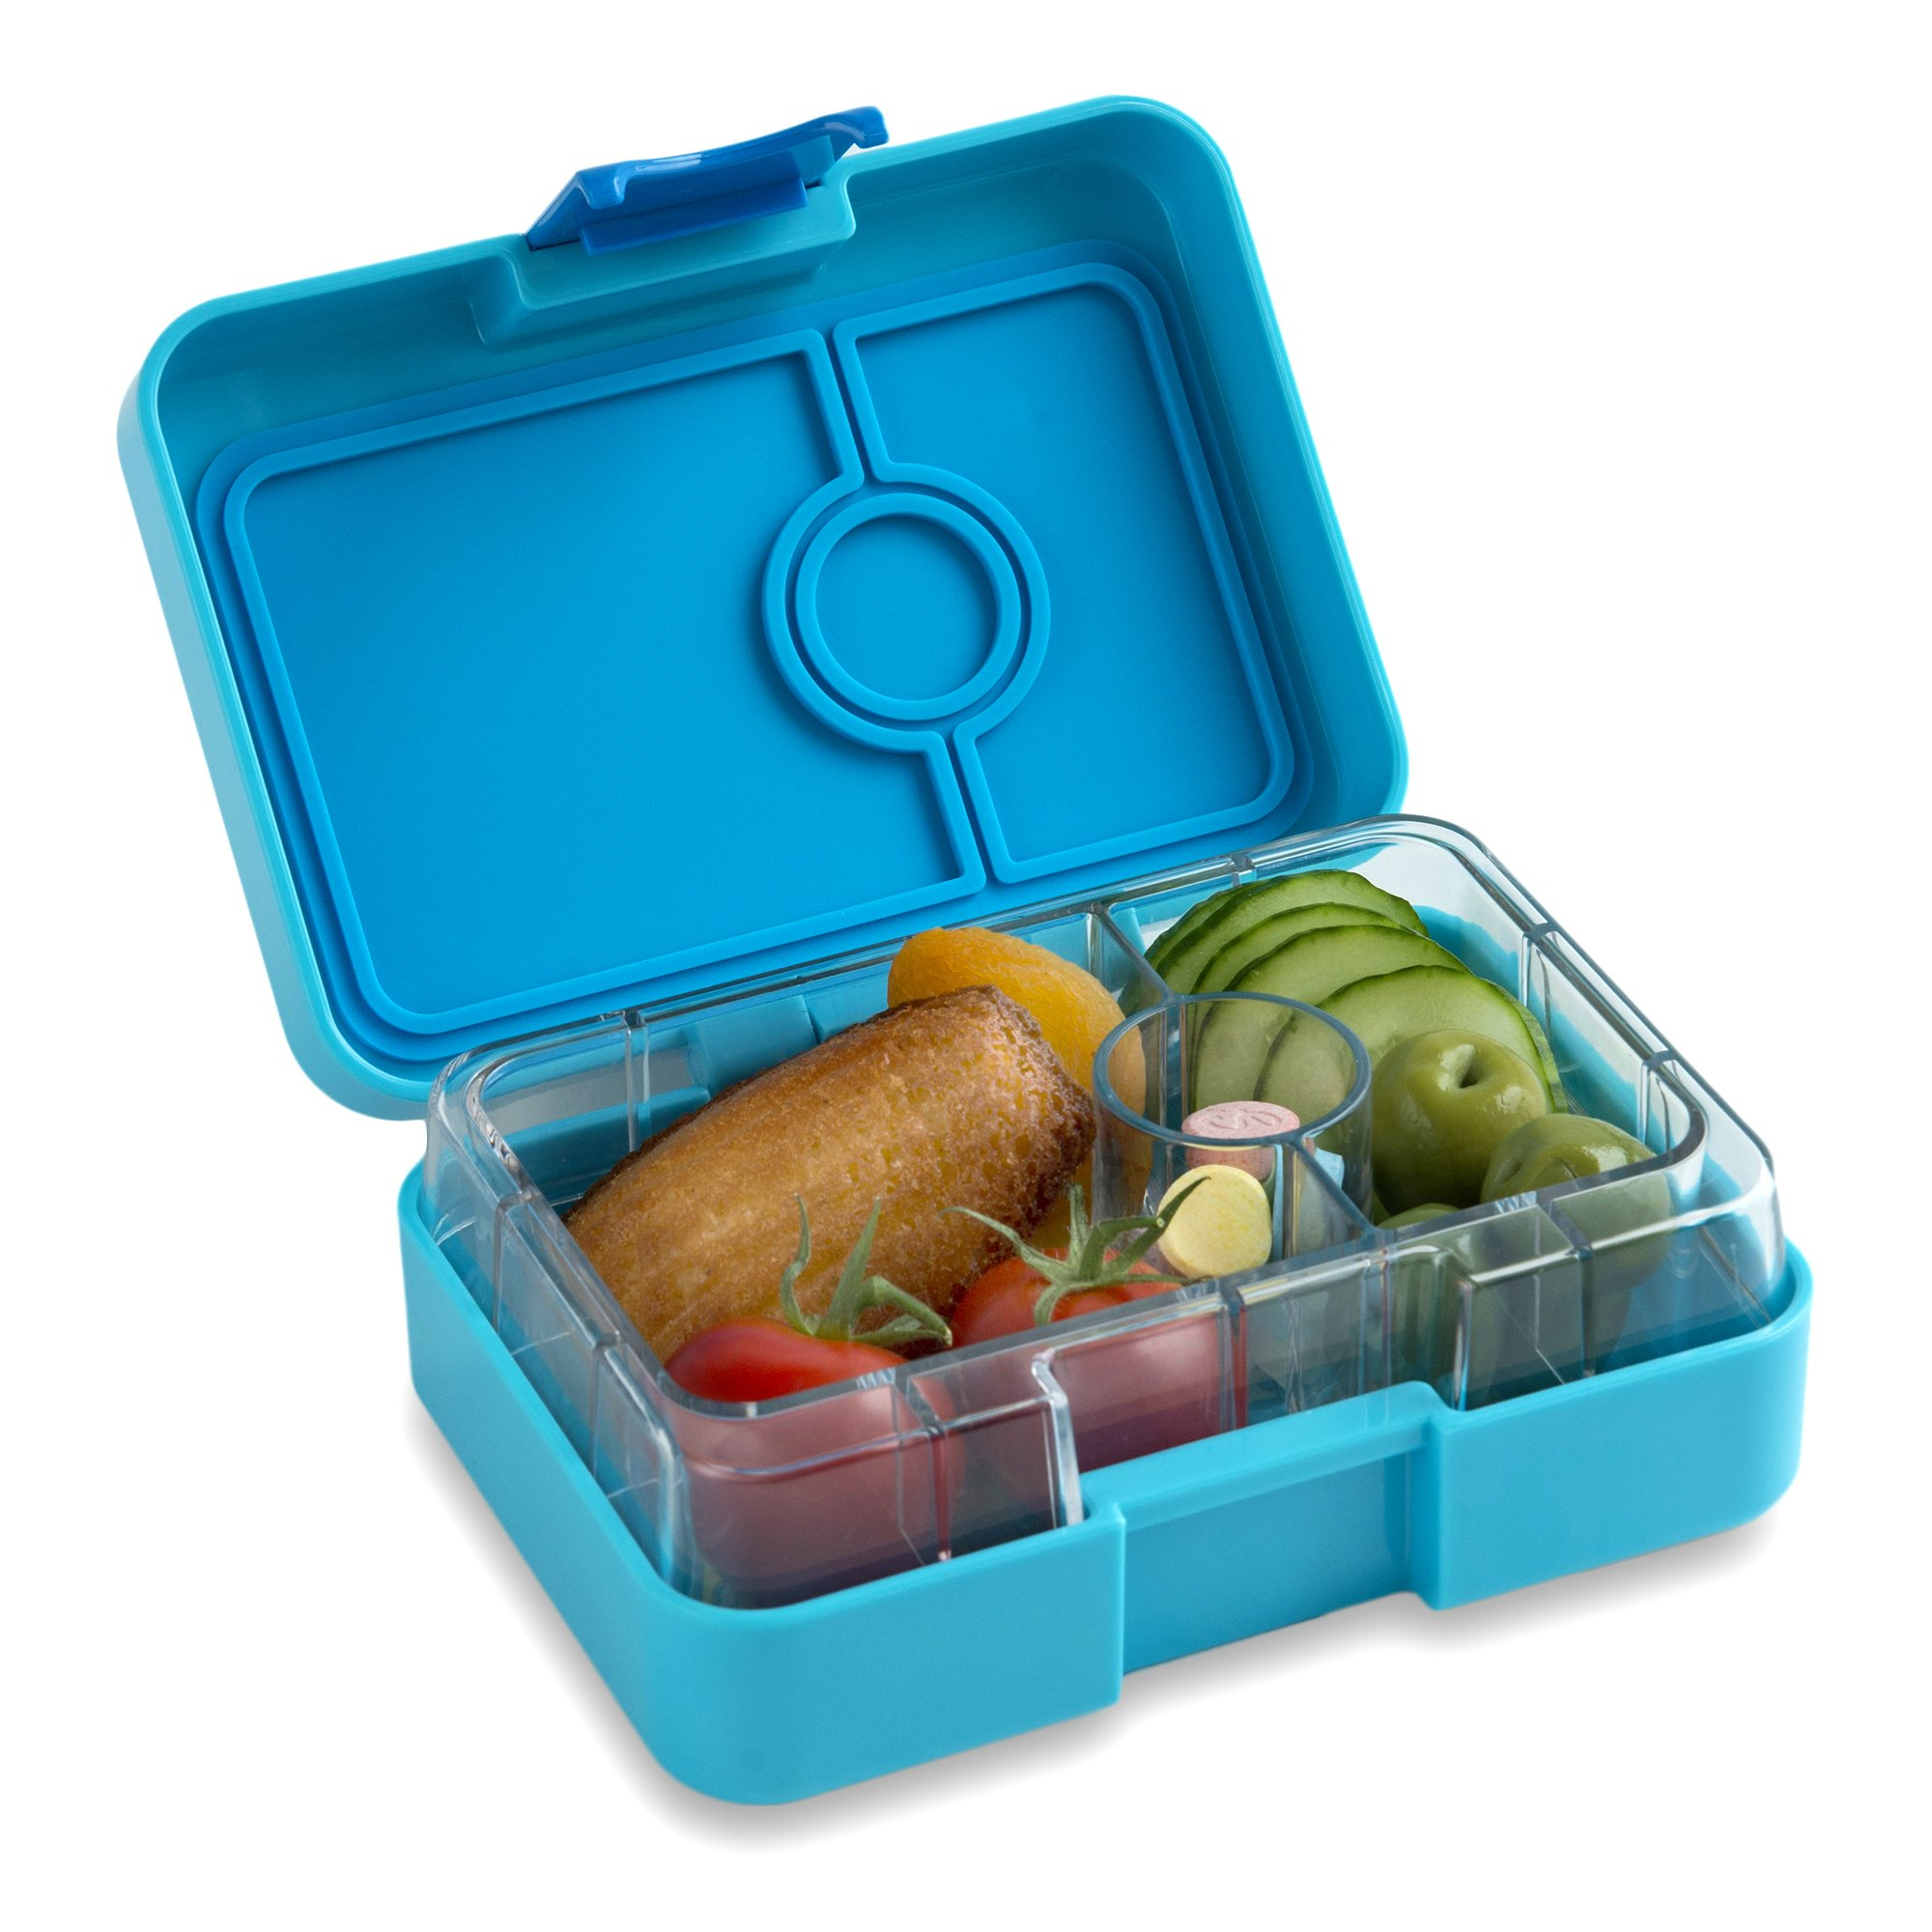 YUMBOX MiniSnack Leakproof Snack Box (Blue Fish); Bento-style snack box offers Durable, Leak-proof, On-the-go Meal and Snack Packing …